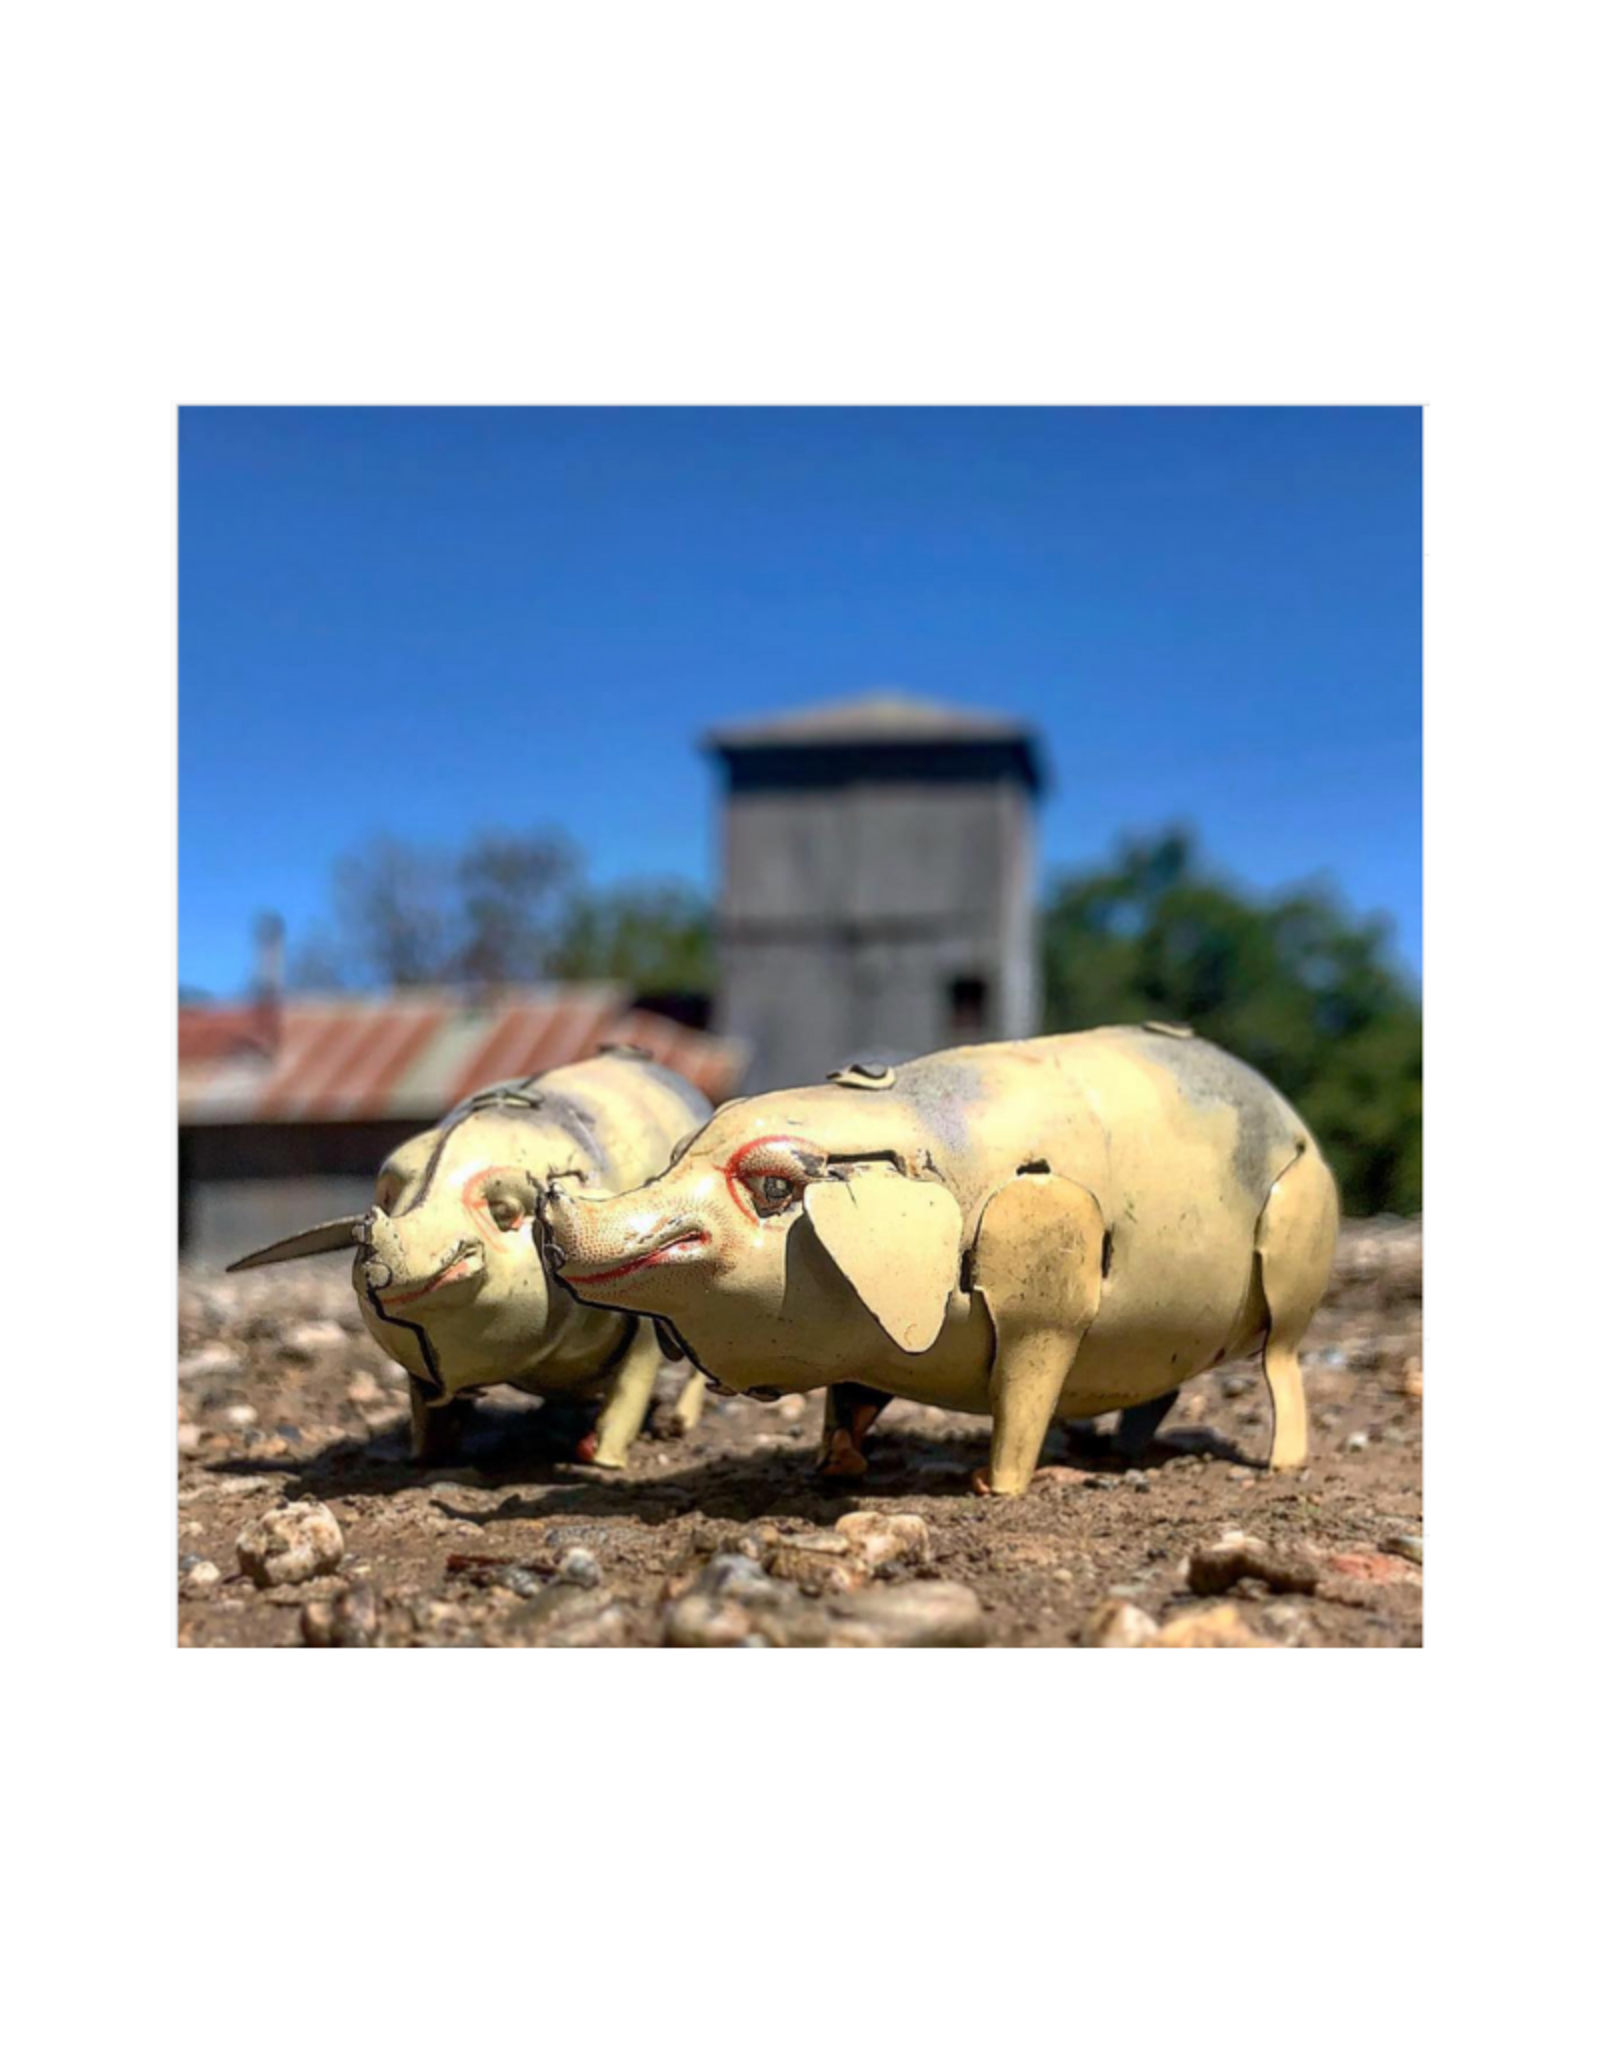 Jerry Business Vintage Toy Photo on Metal - Pigs